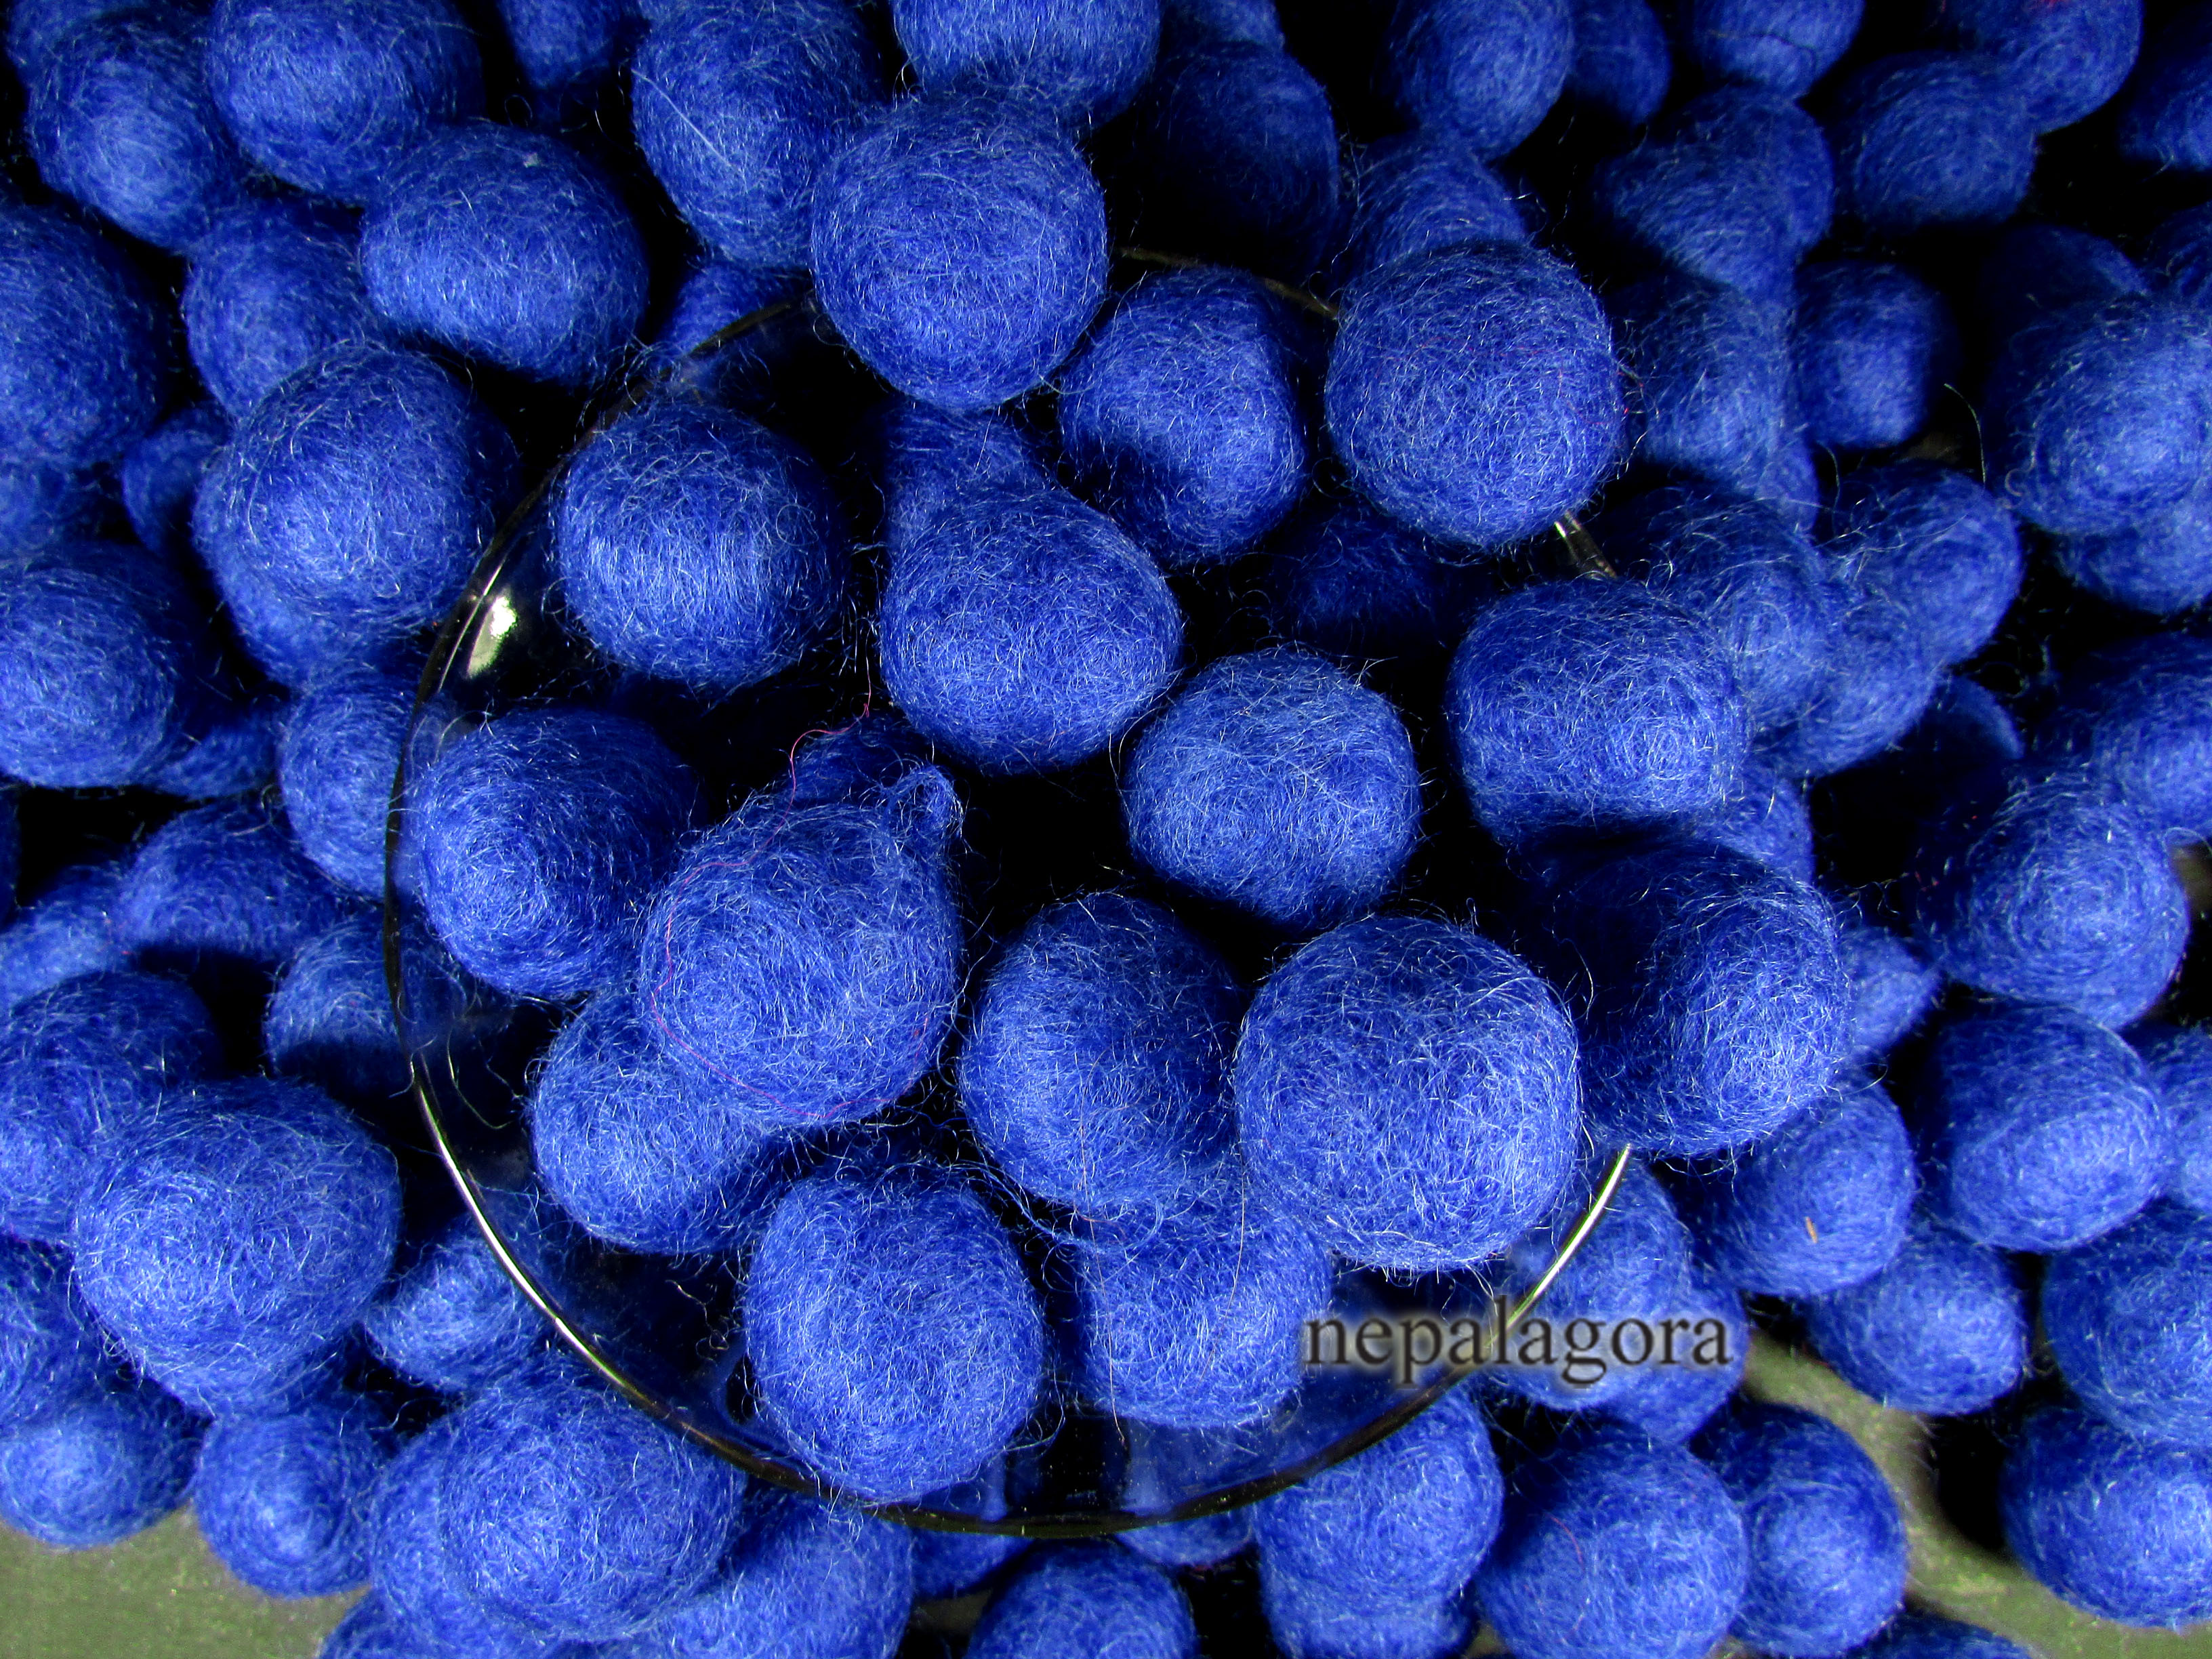 Handmade Wool Felt Ball 2cm Dark Blue Beads Kids Craft Garland Decor Nepal Nepal Agora